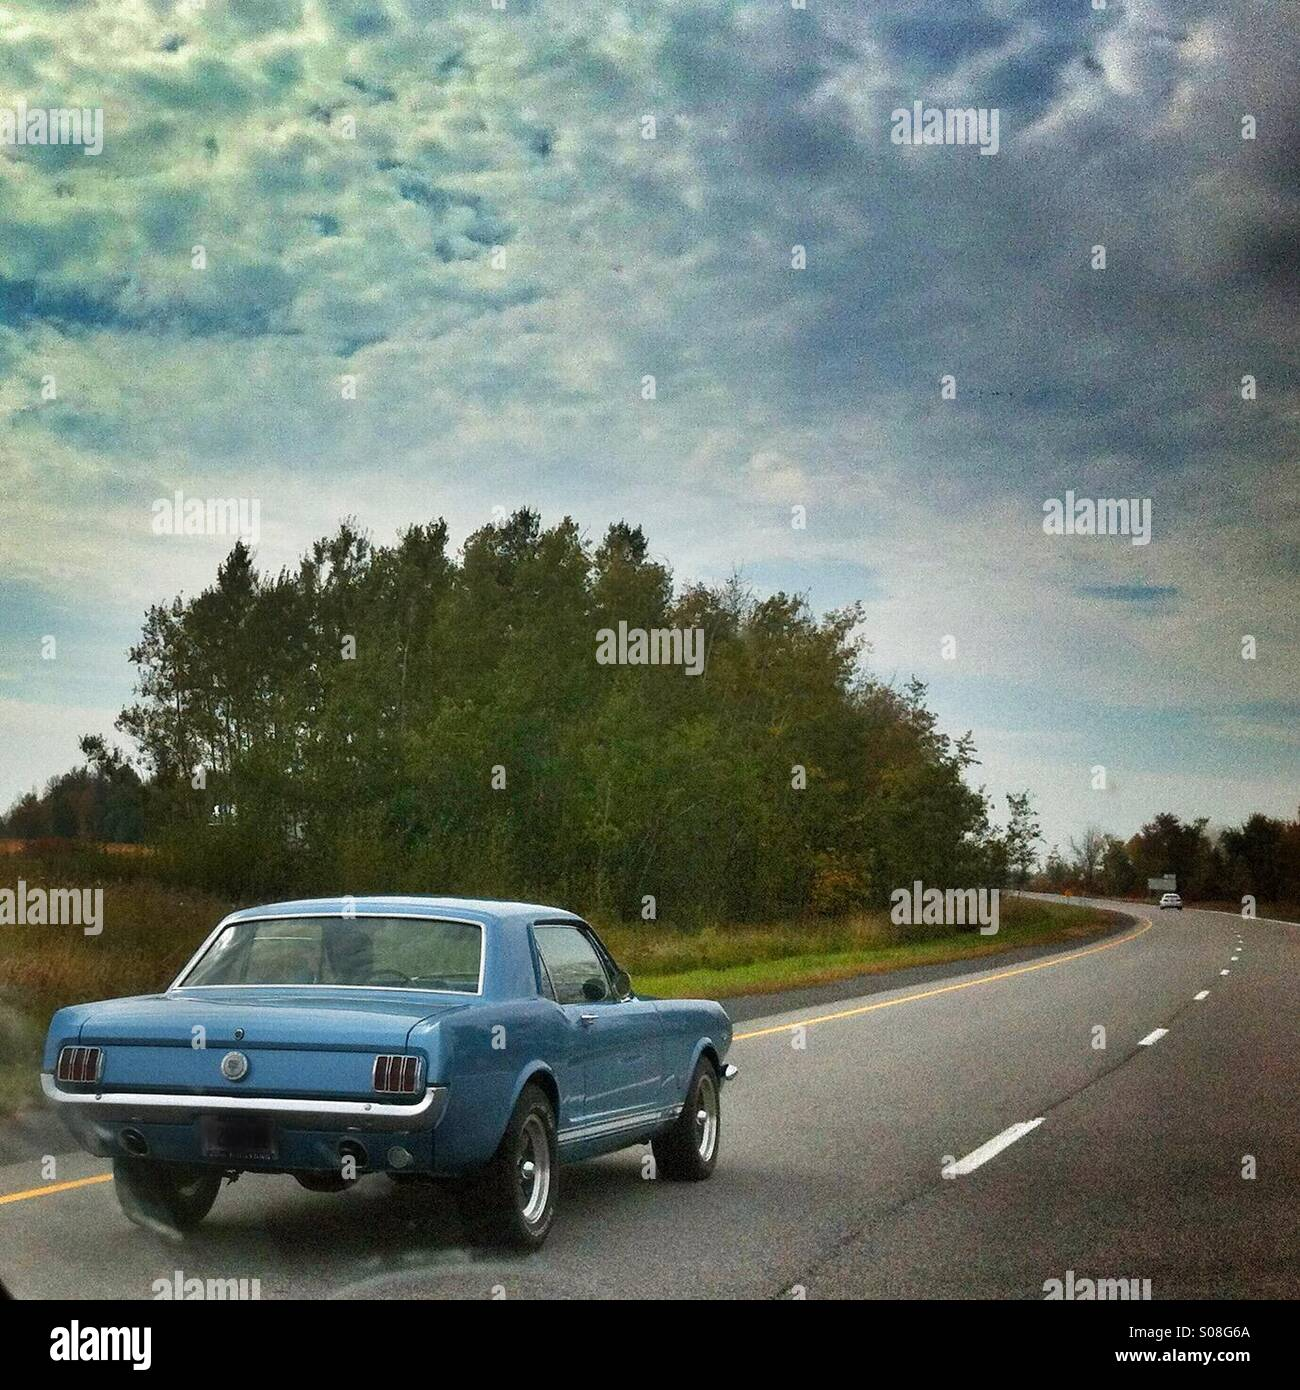 60s Ford Mustang - Stock Image